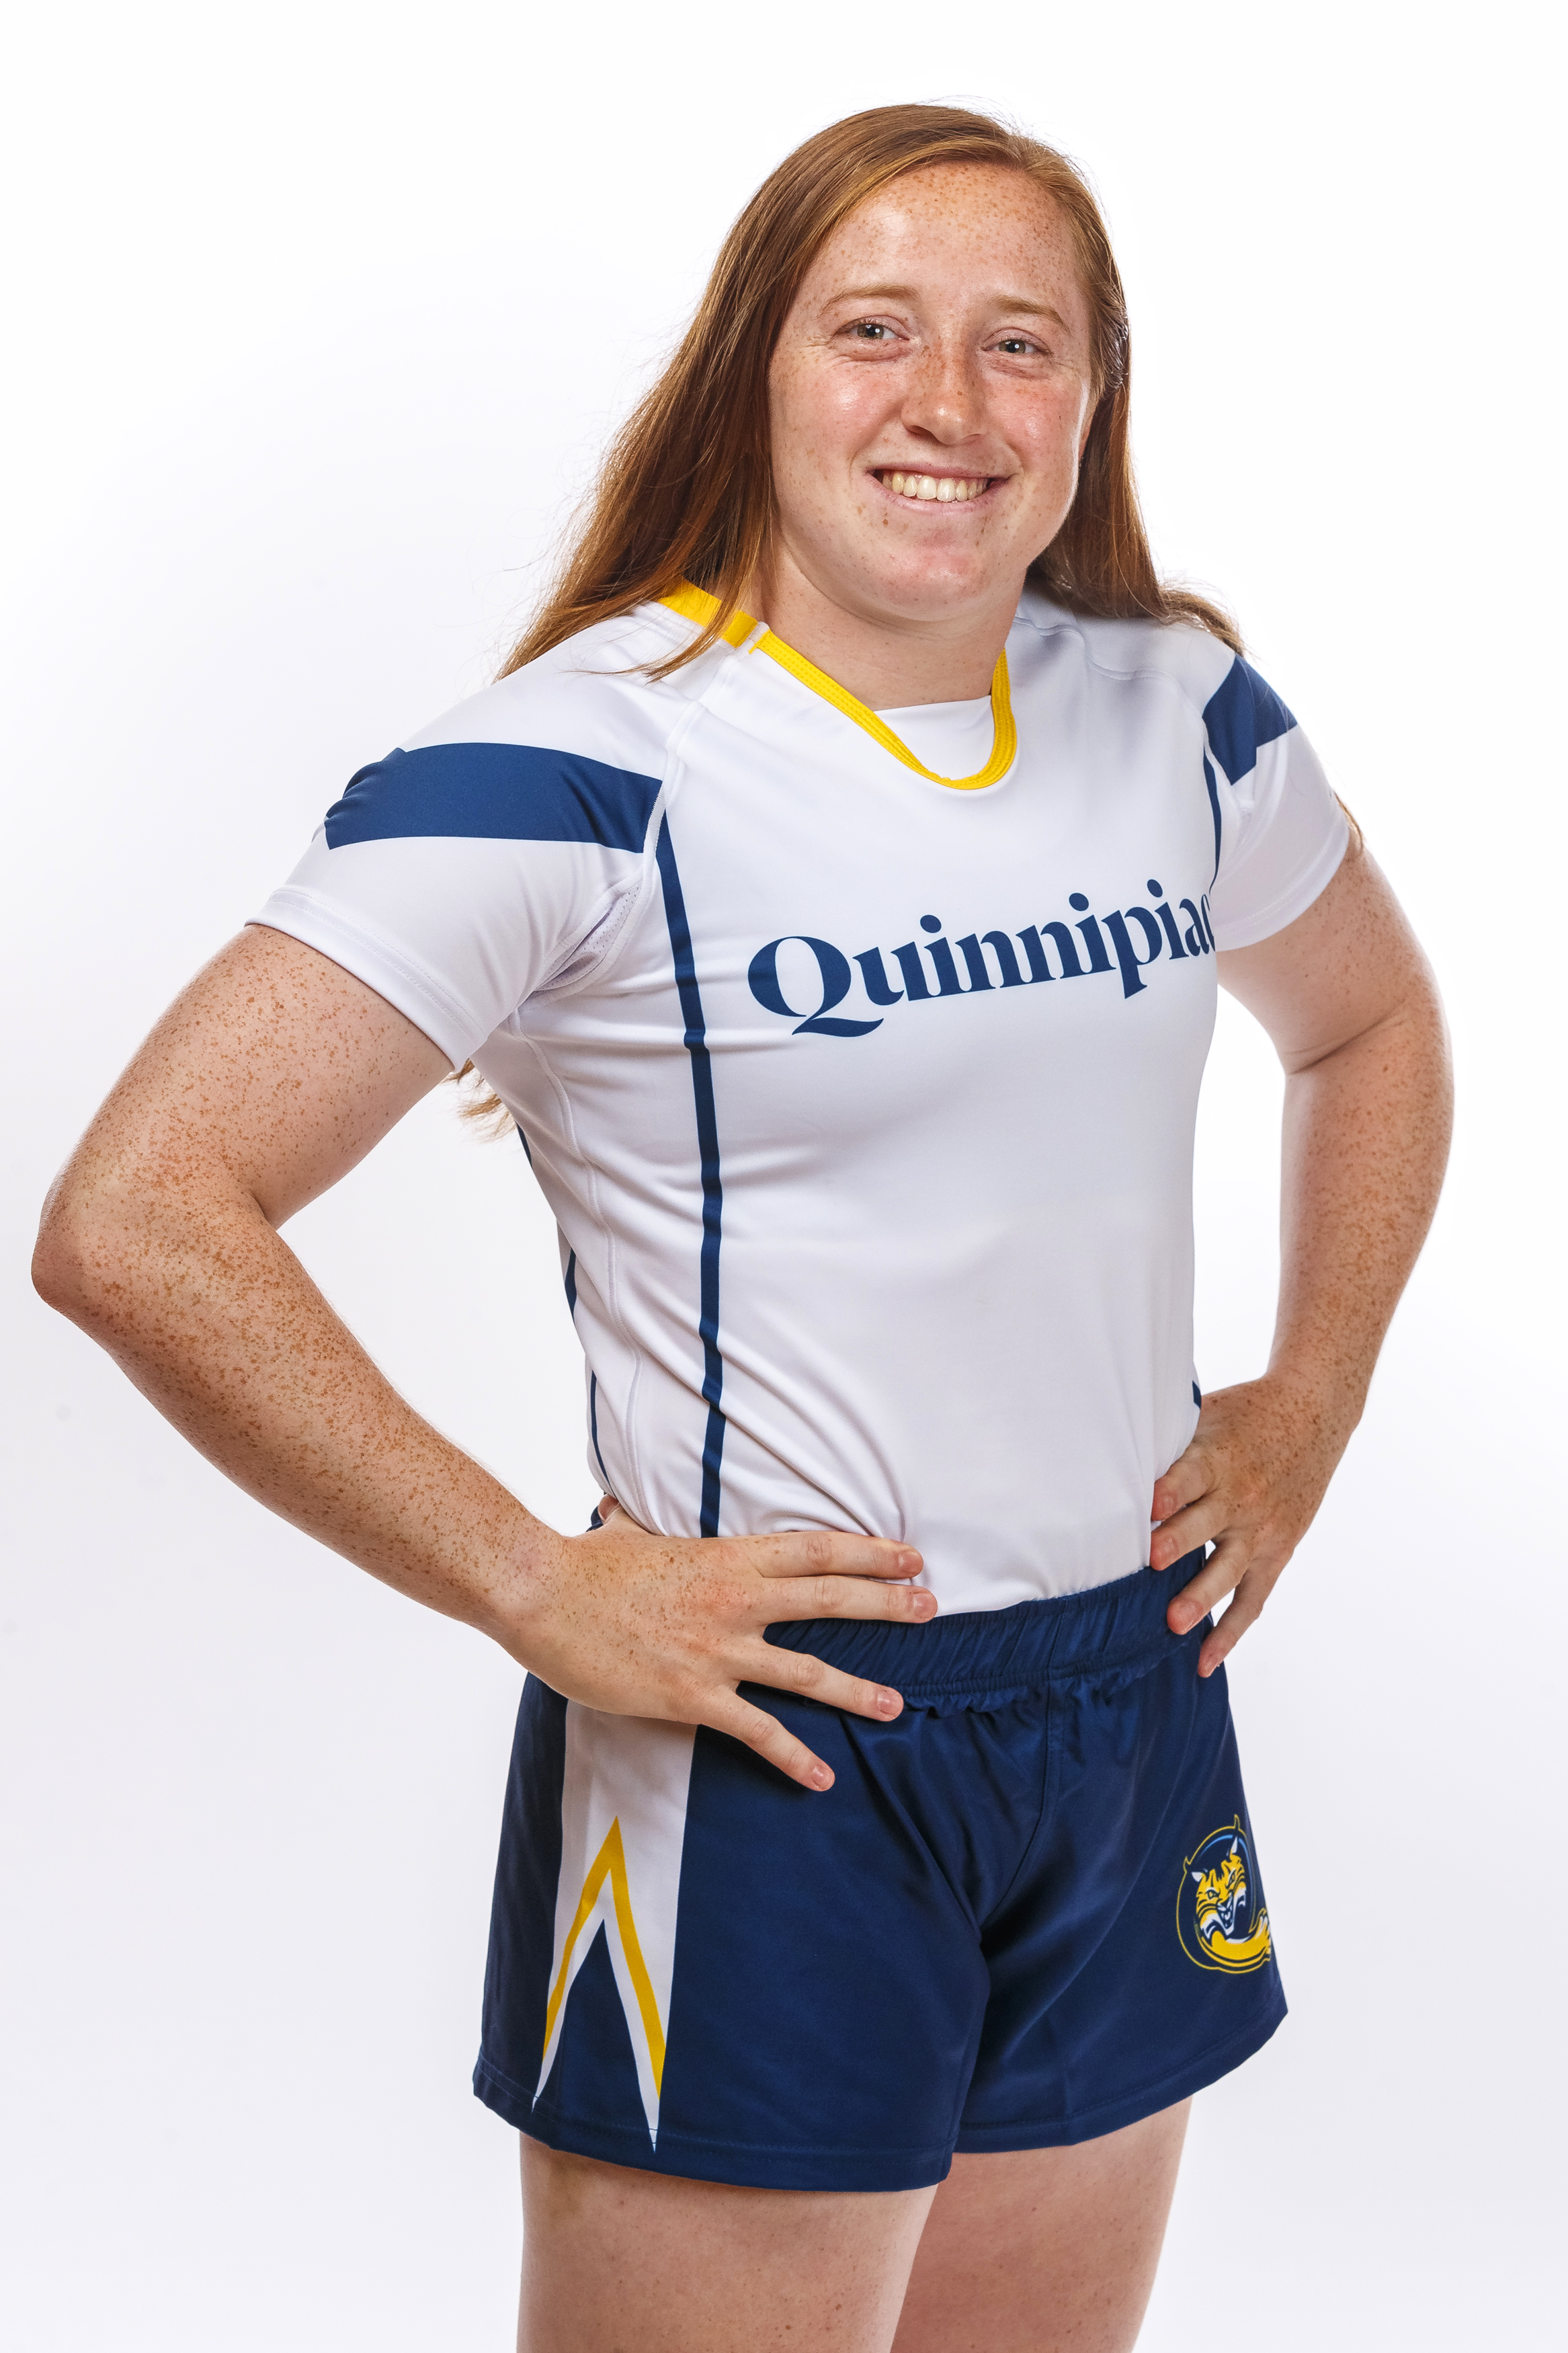 Emily Roskopf - Senior, Captain of Quinnipiac Women's Rugby.Photo Courtesy of Quinnipiac Athletics